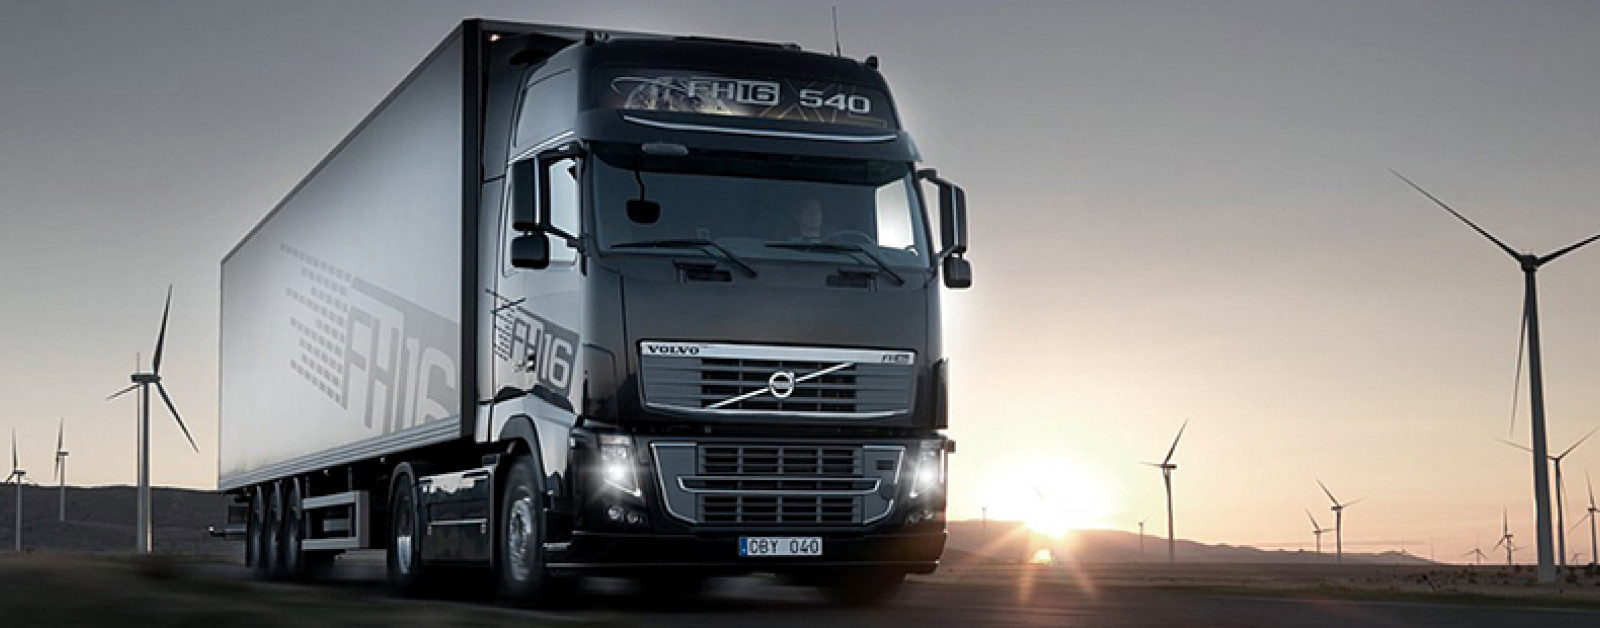 The new Volvo FH16